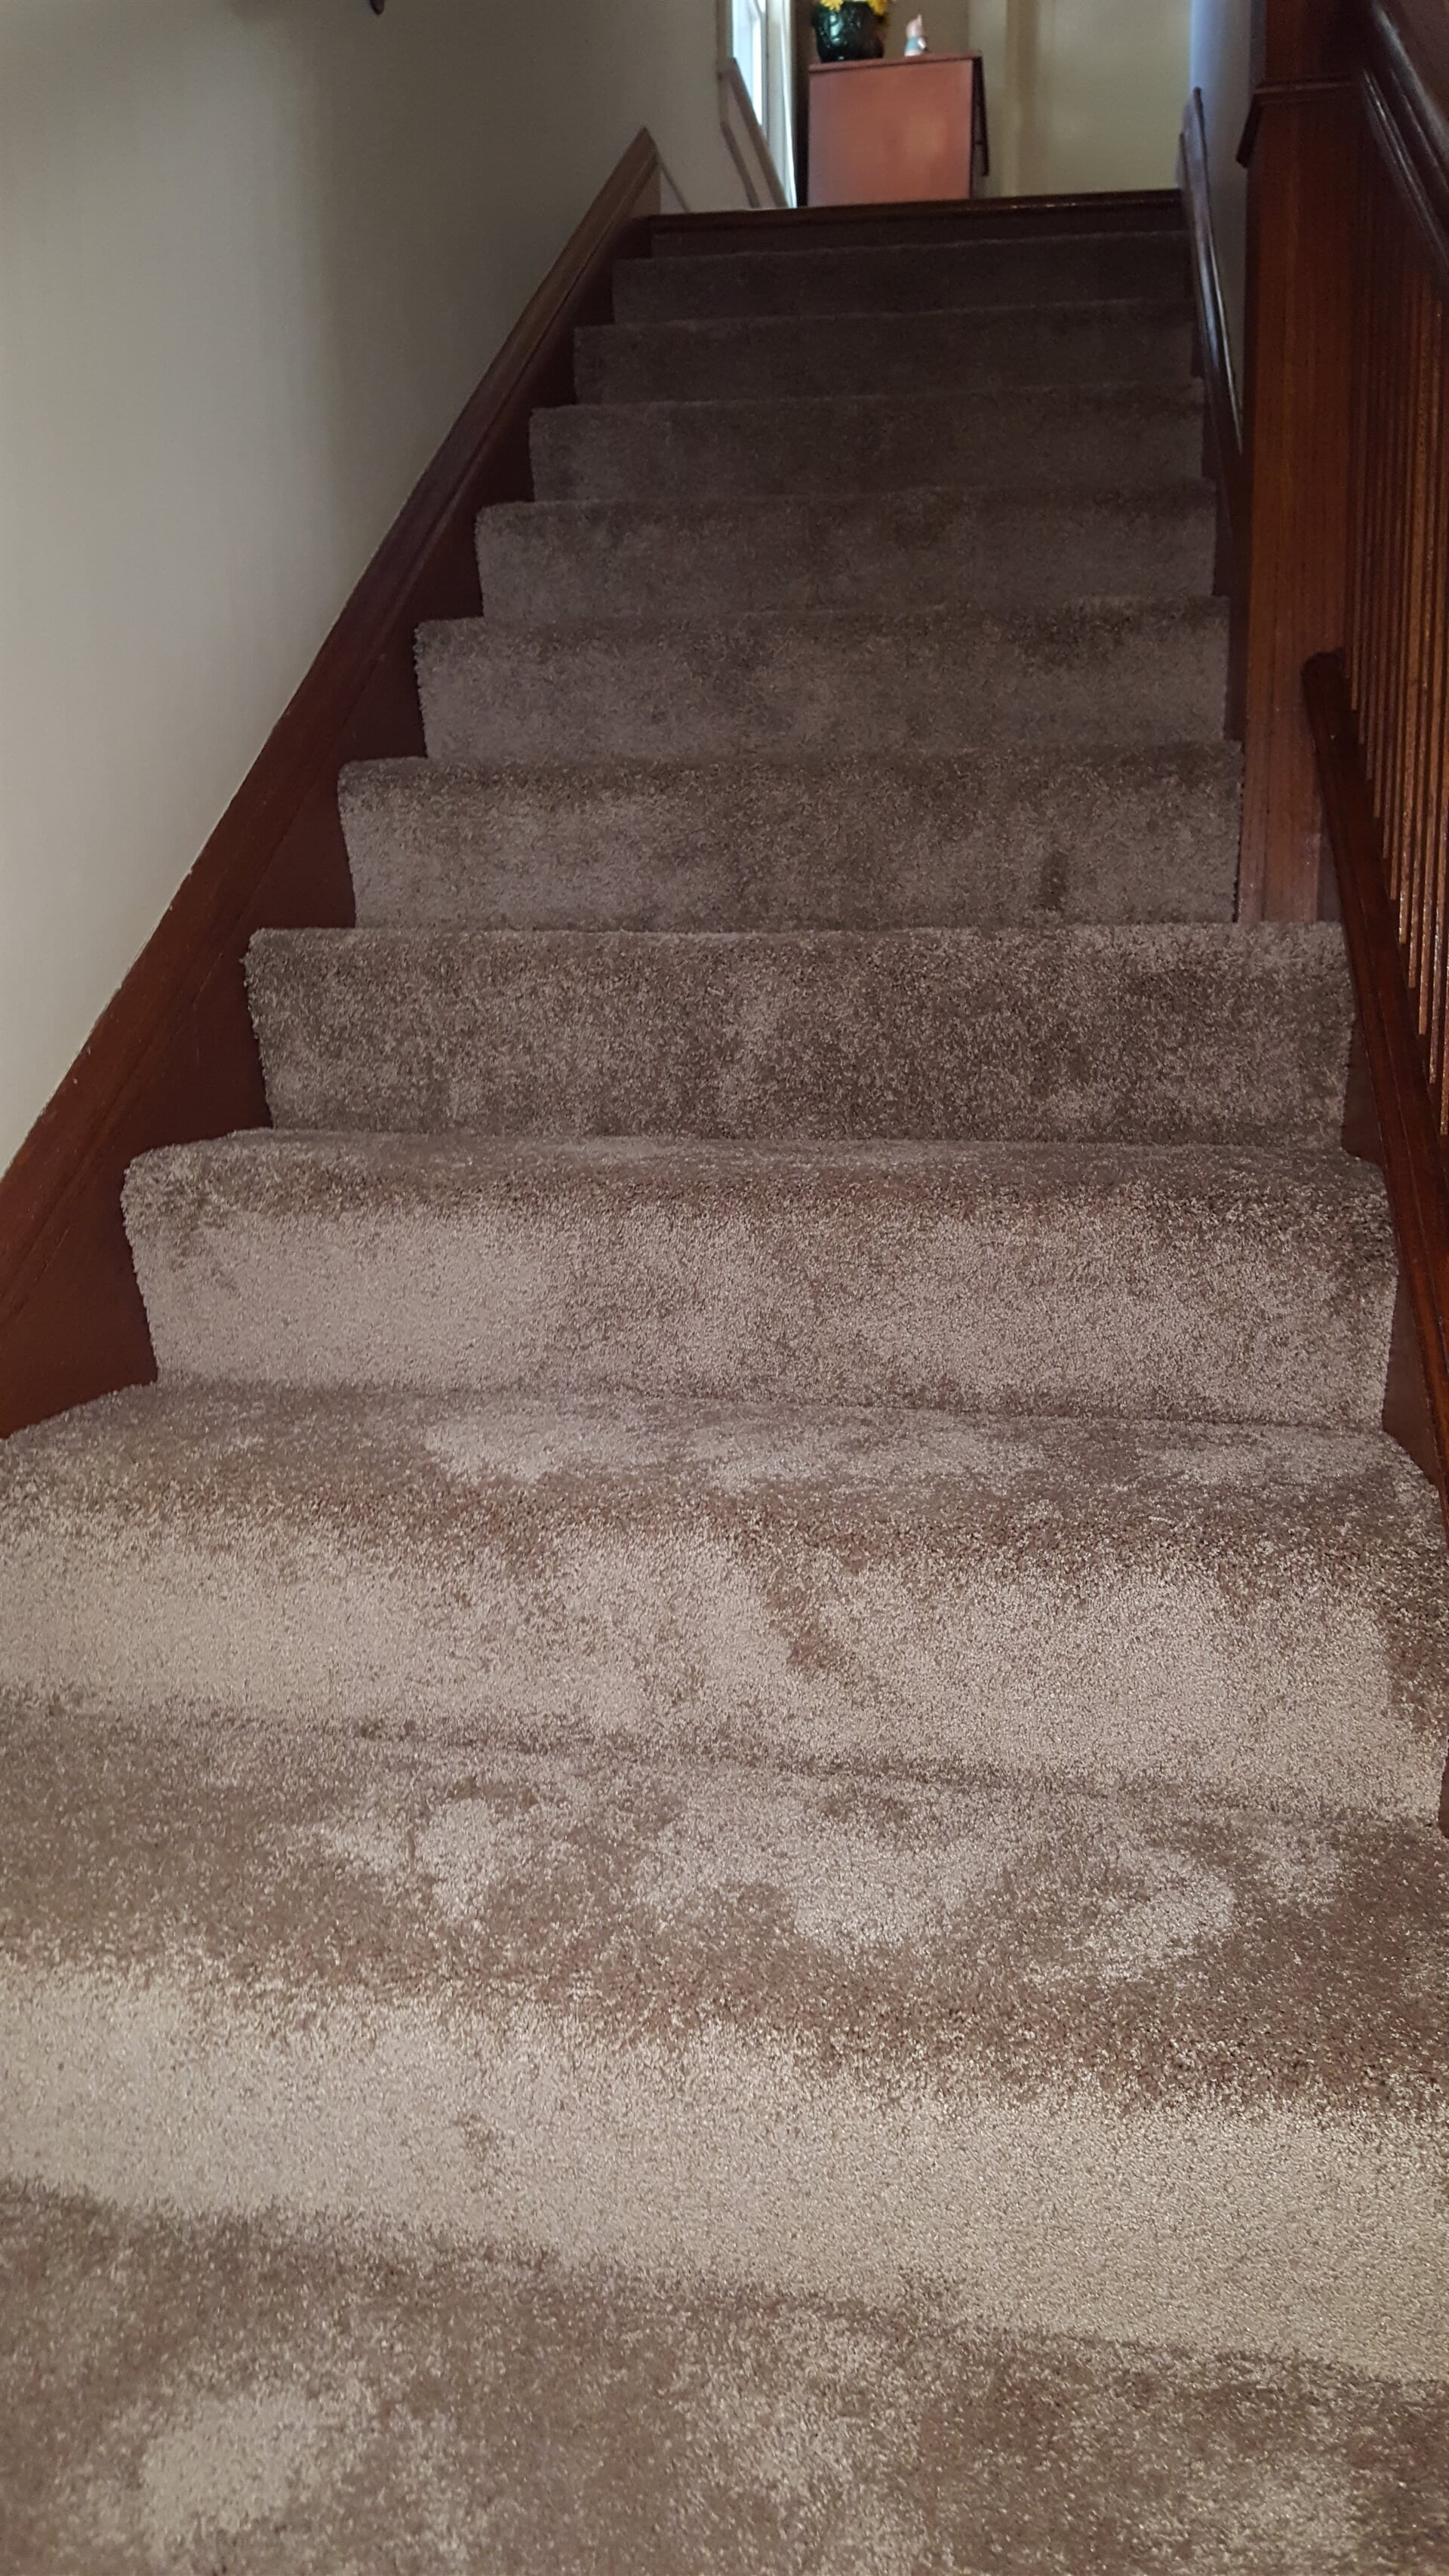 Classic carpeted stairs in Lemont, IL from Marchio Tile & Carpet Inc.